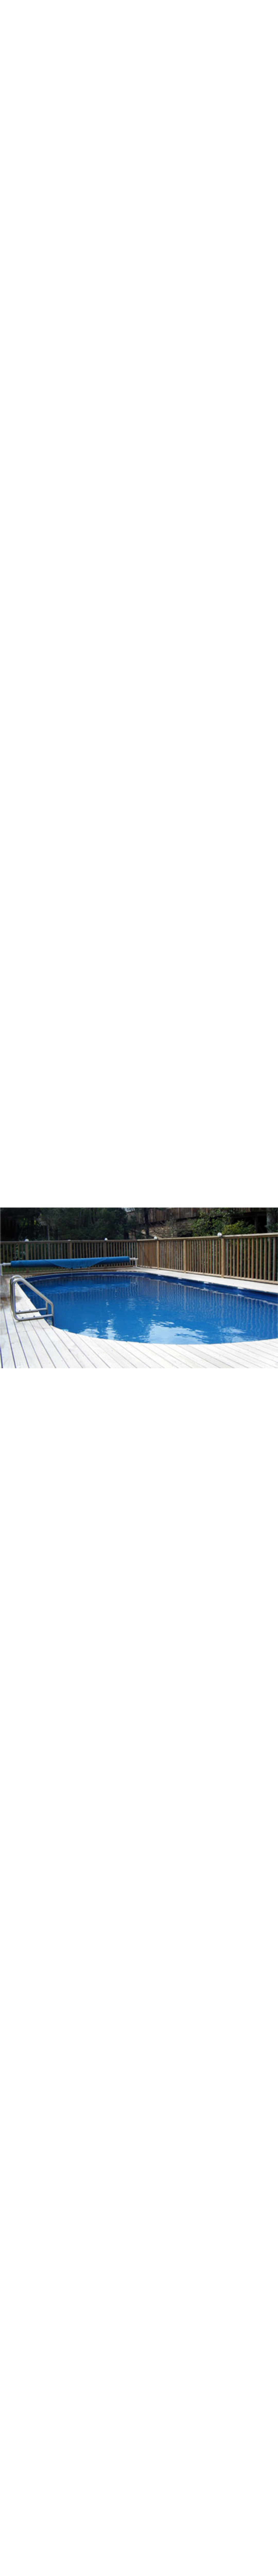 Lido Swimming Pool - installed above-ground and finished with deck surround. Fitted with optional solar heating cover and roller.